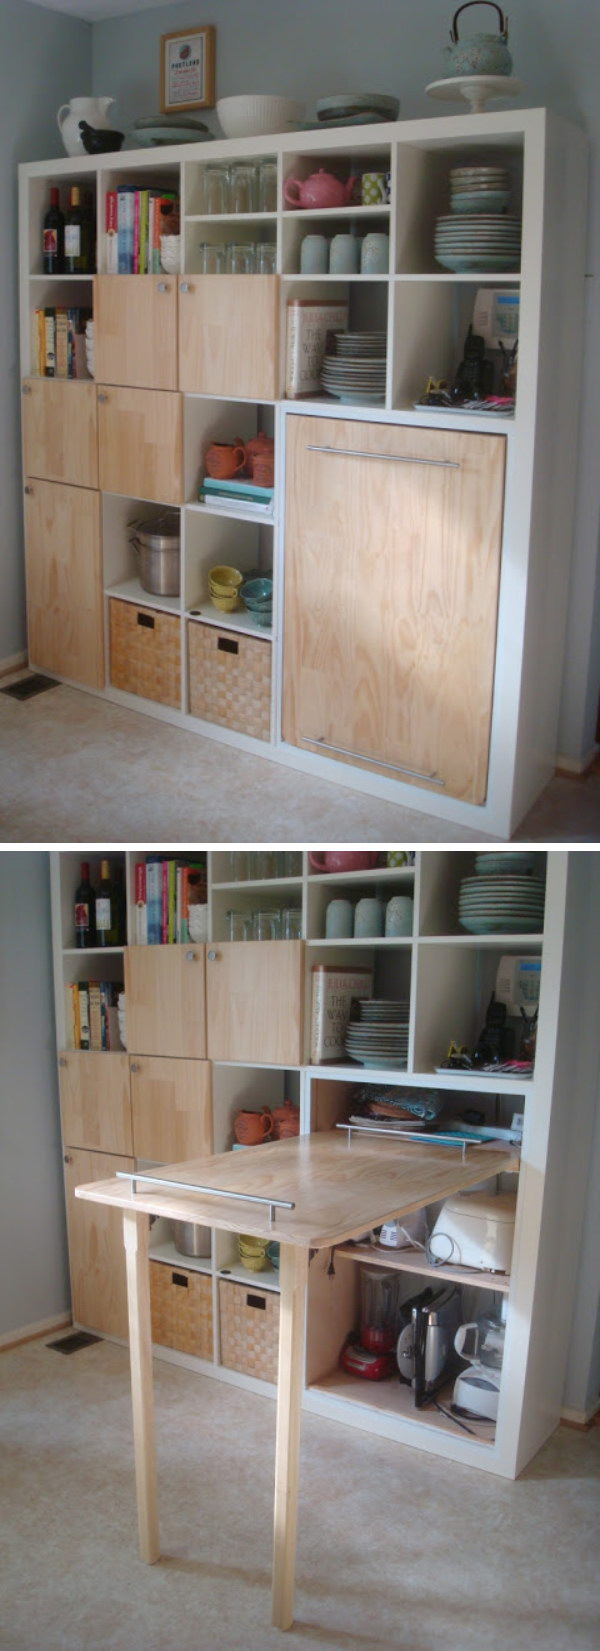 Pull-out Counter Top for Kitchen Storage. Create one pull-out counter top with IKEA hacks for more kitchen storage.